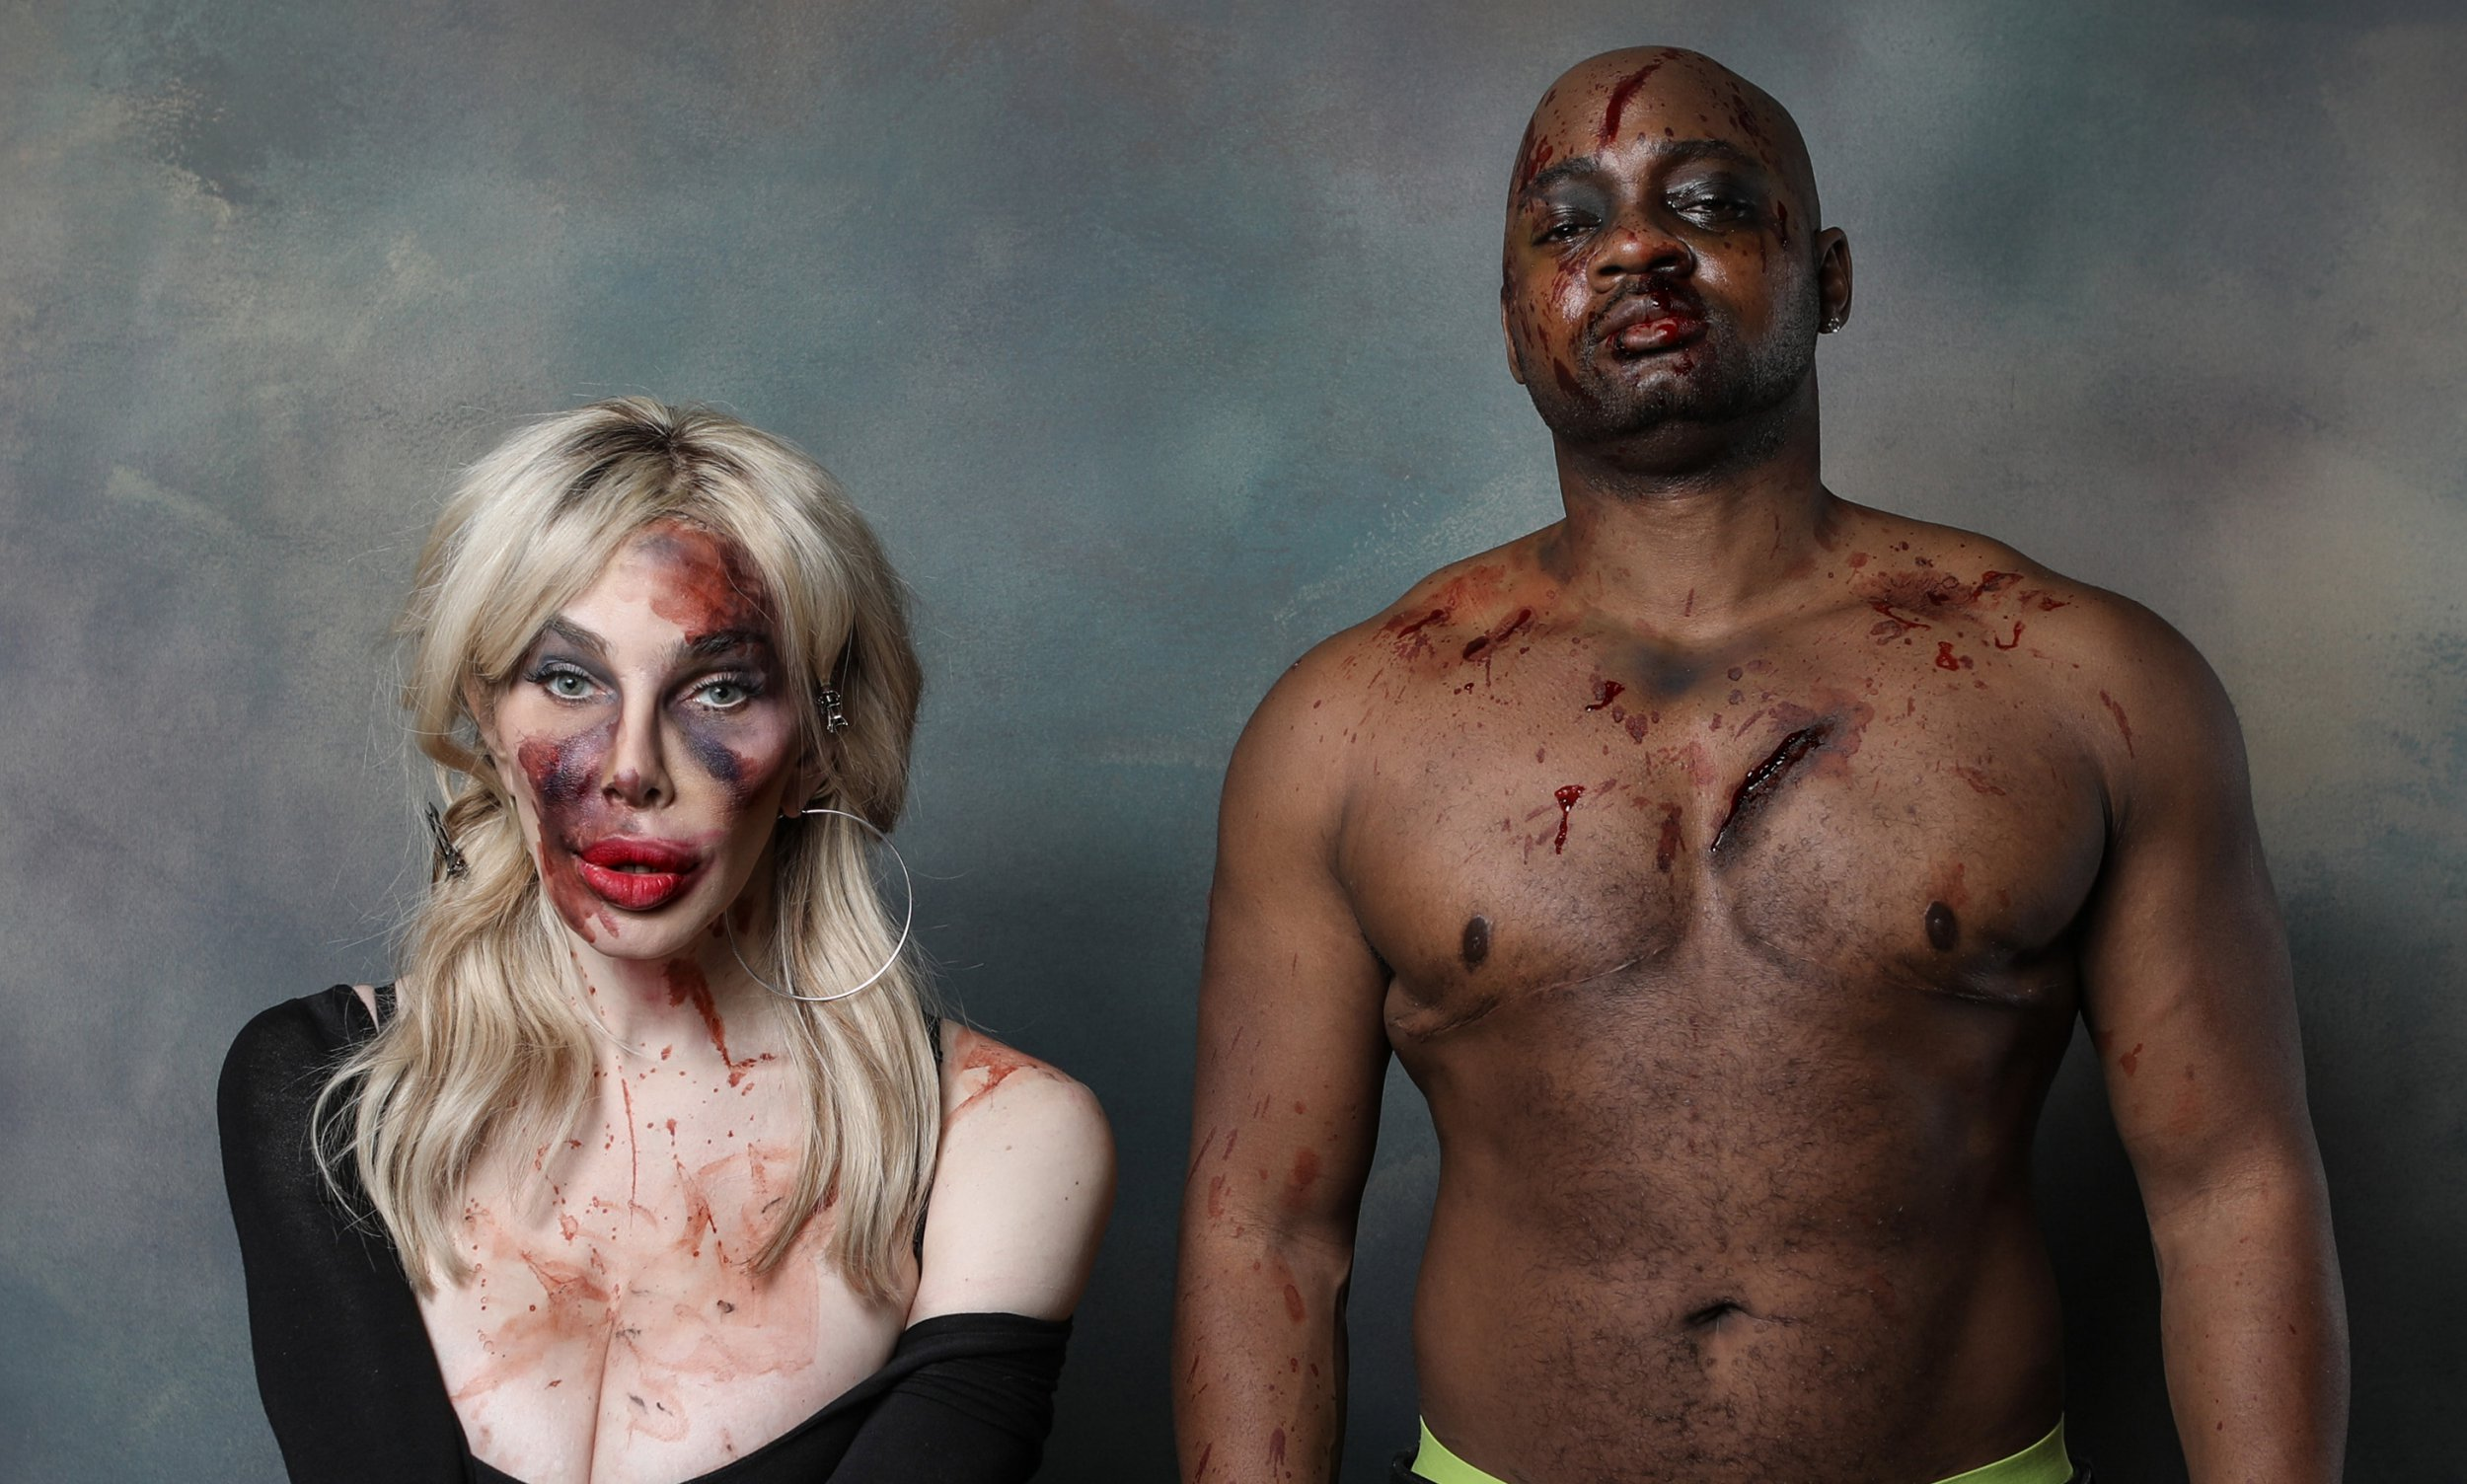 PICS BY THOMAS EVANS / CATERS NEWS - (PICTURED: He photographed celebrity models Dina Delicious and Brian Michael Smith as part of the shoot in Central Connecticut State University, USA) - Trans models have been photographed beaten up and dressed in gender norms as part of a trans awareness week. Thomas Evans hopes to depict the abuse transgender people face and their accepted societal norms in his daring images. He photographed celebrity models Dina Delicious and Brian Michael Smith as part of the shoot in Central Connecticut State University, USA. - SEE CATERS COPY